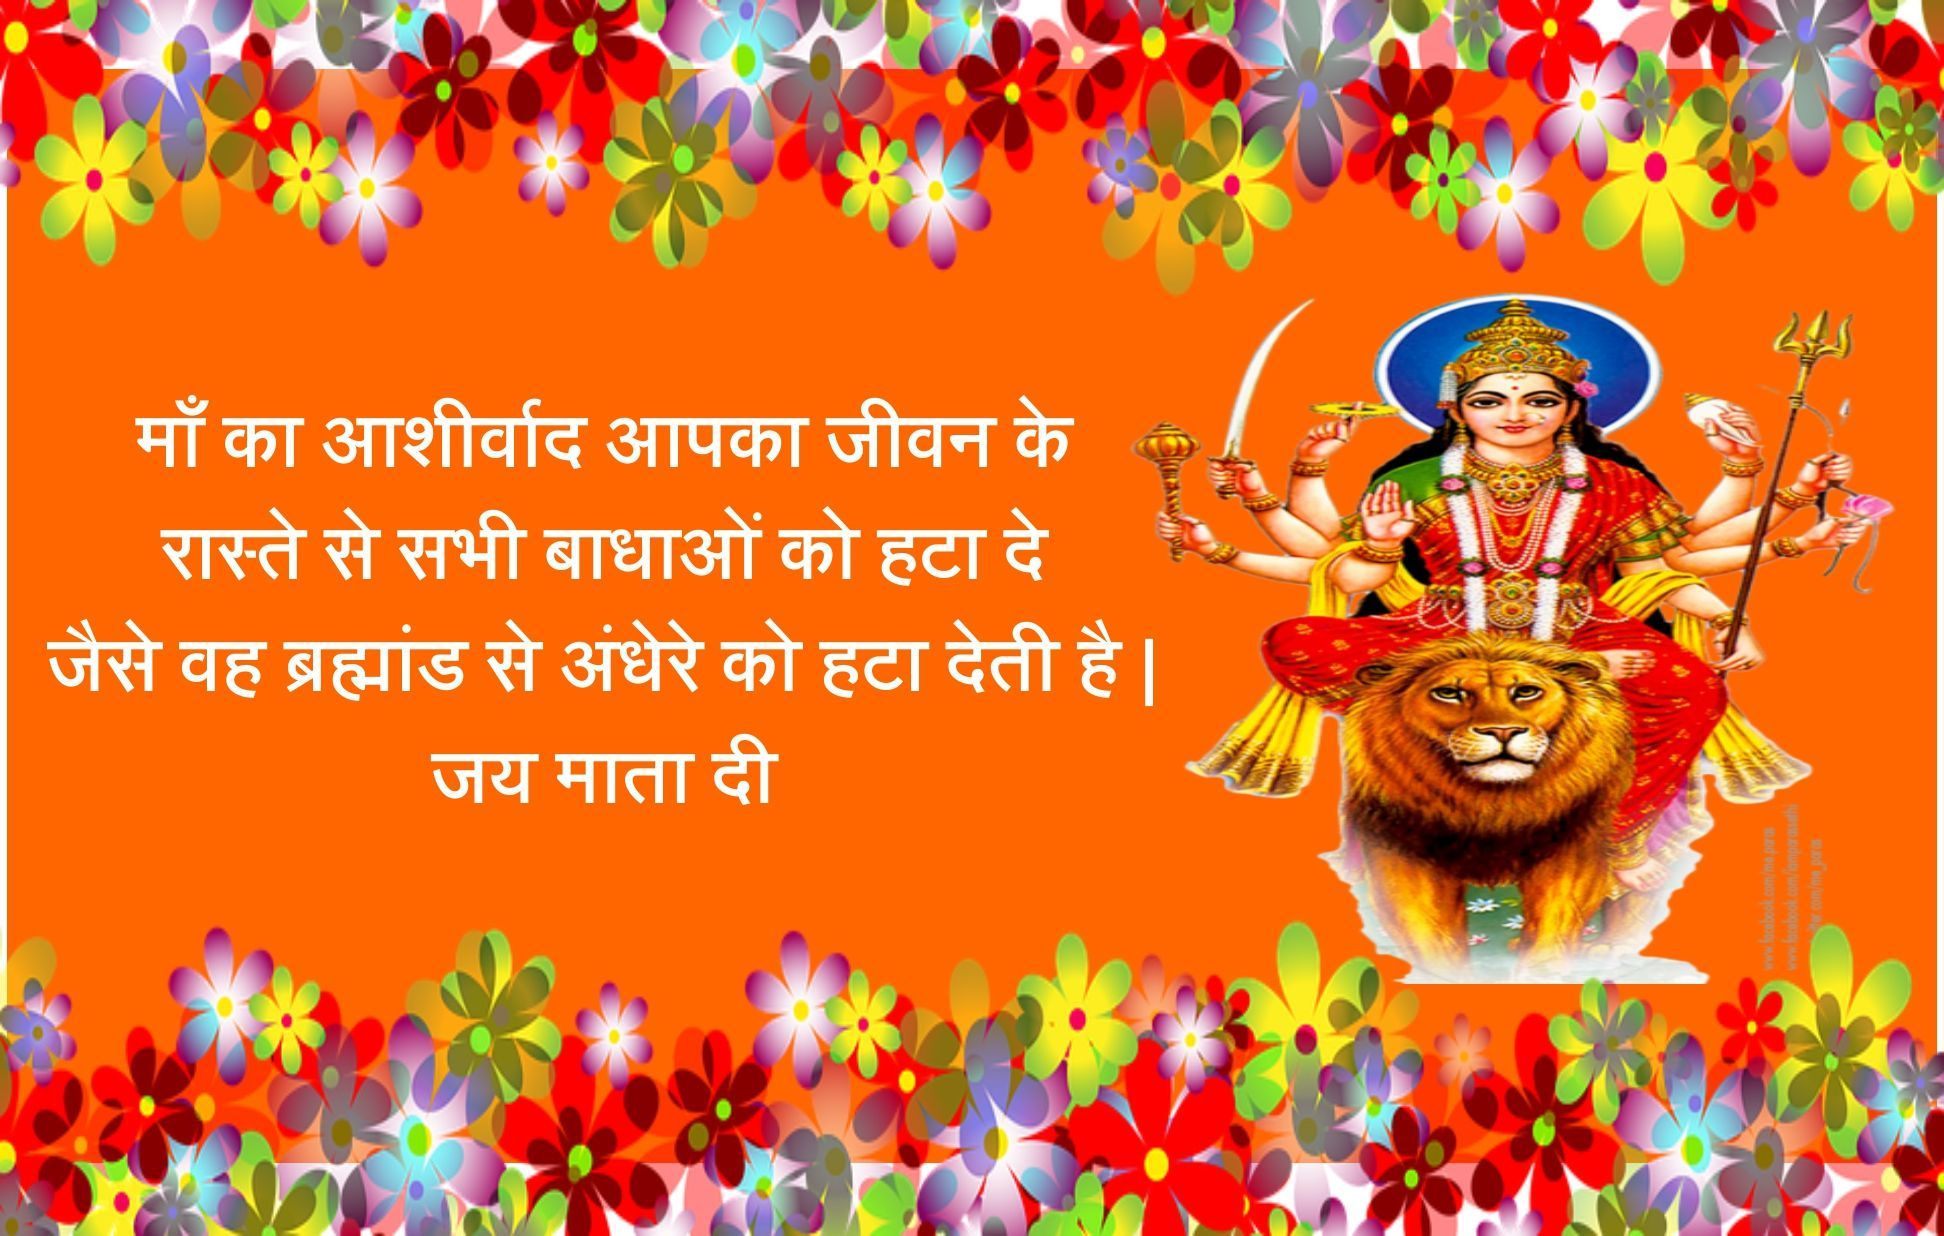 Durga Puja 5 Wishes Quotes Durga Puja Wishes in Hindi 5